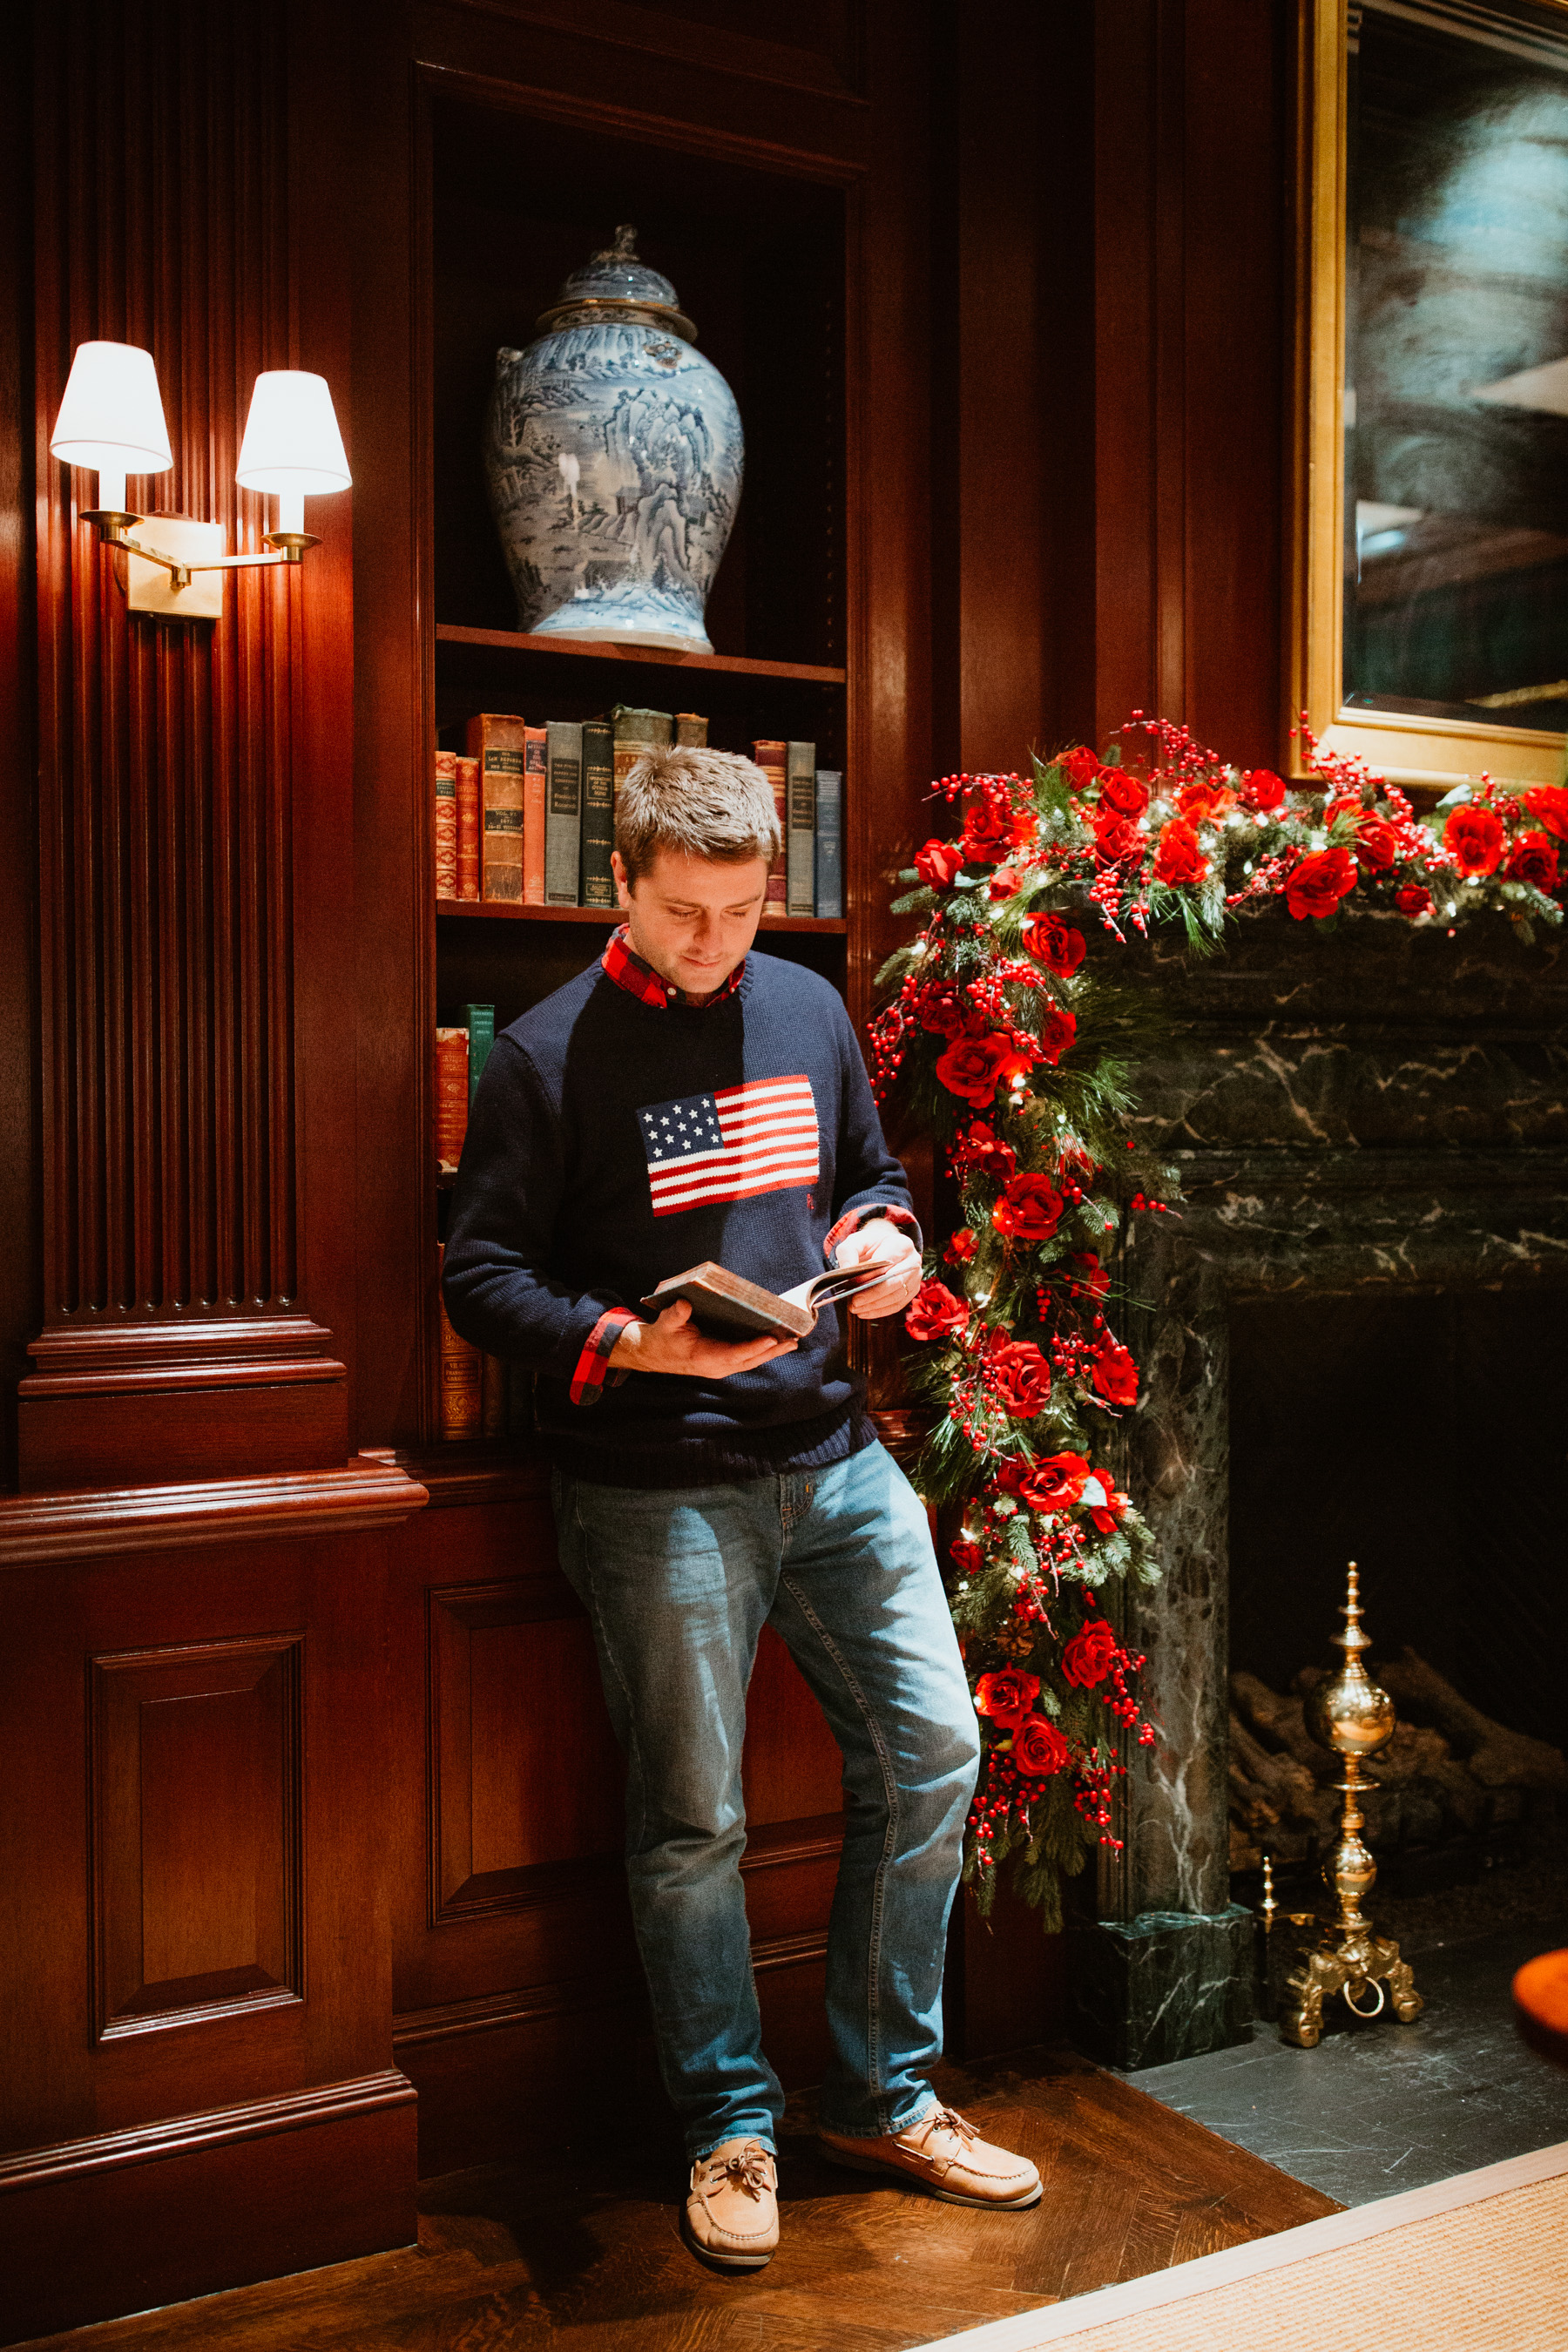 Mitch's Outfit: Ralph Lauren American Flag Sweater and Duffle Coat c/o